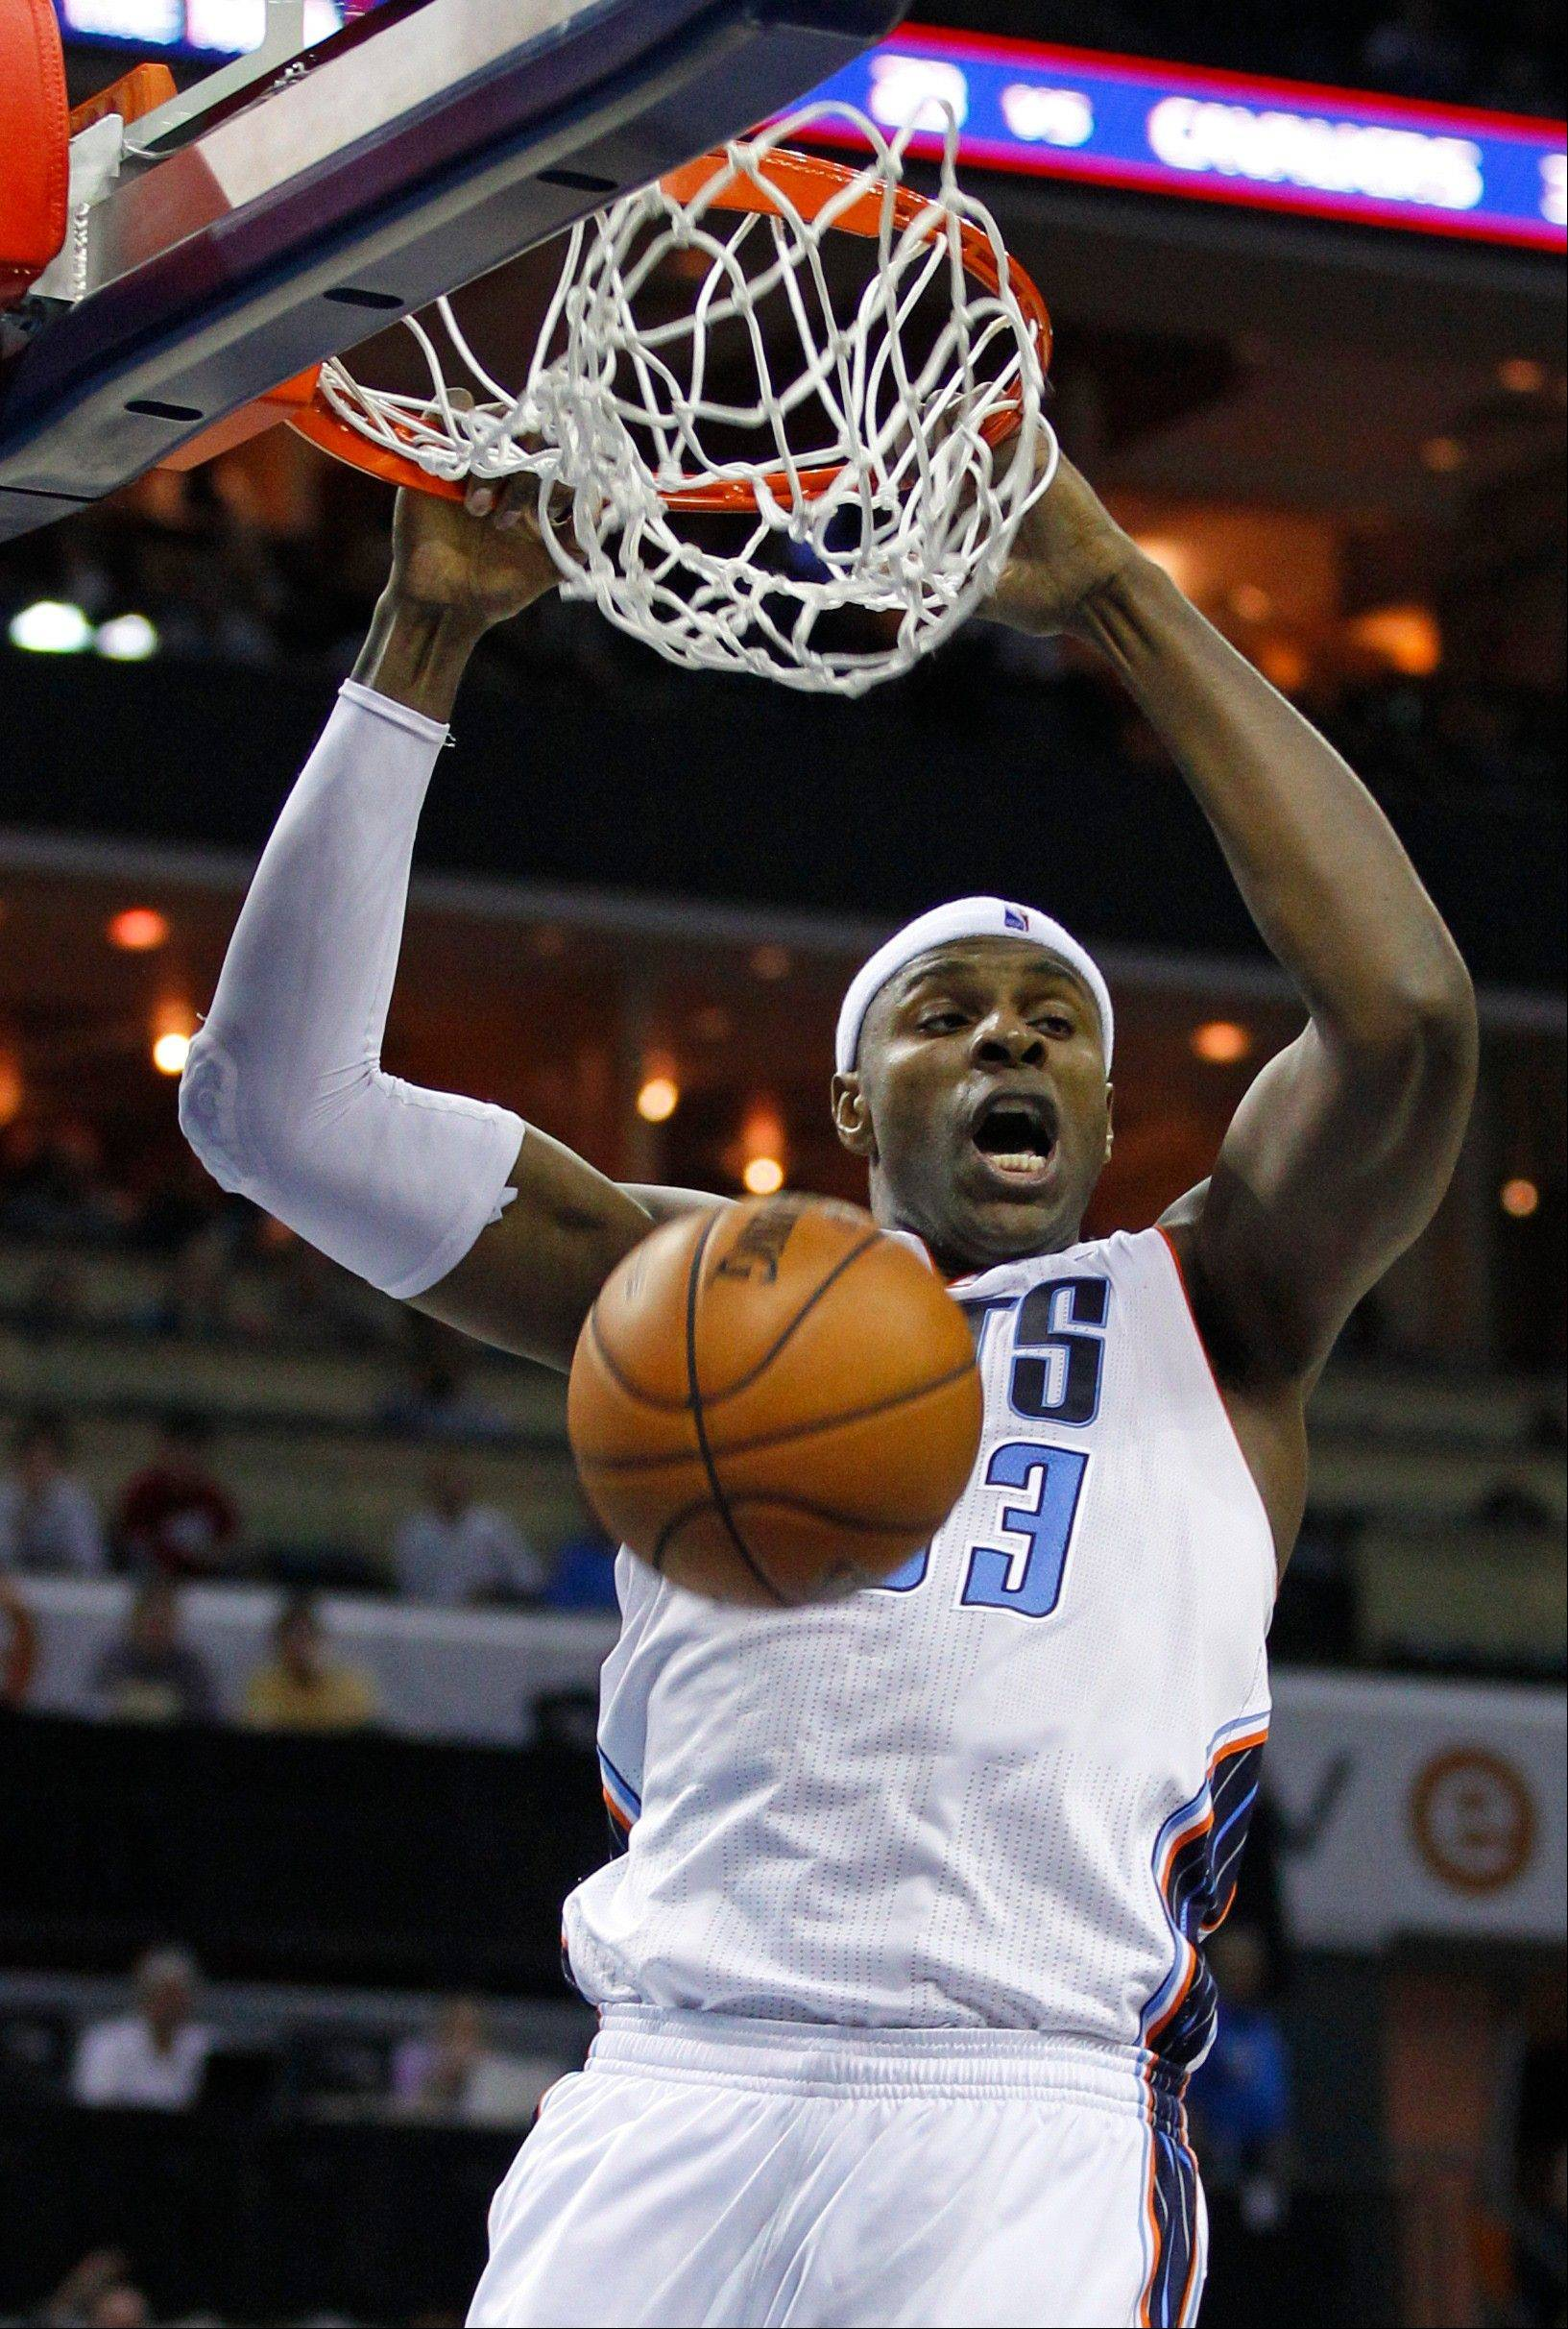 The Bobcats� Brendan Haywood dunks against the Toronto Raptors during the first half Wednesday in Charlotte, N.C.